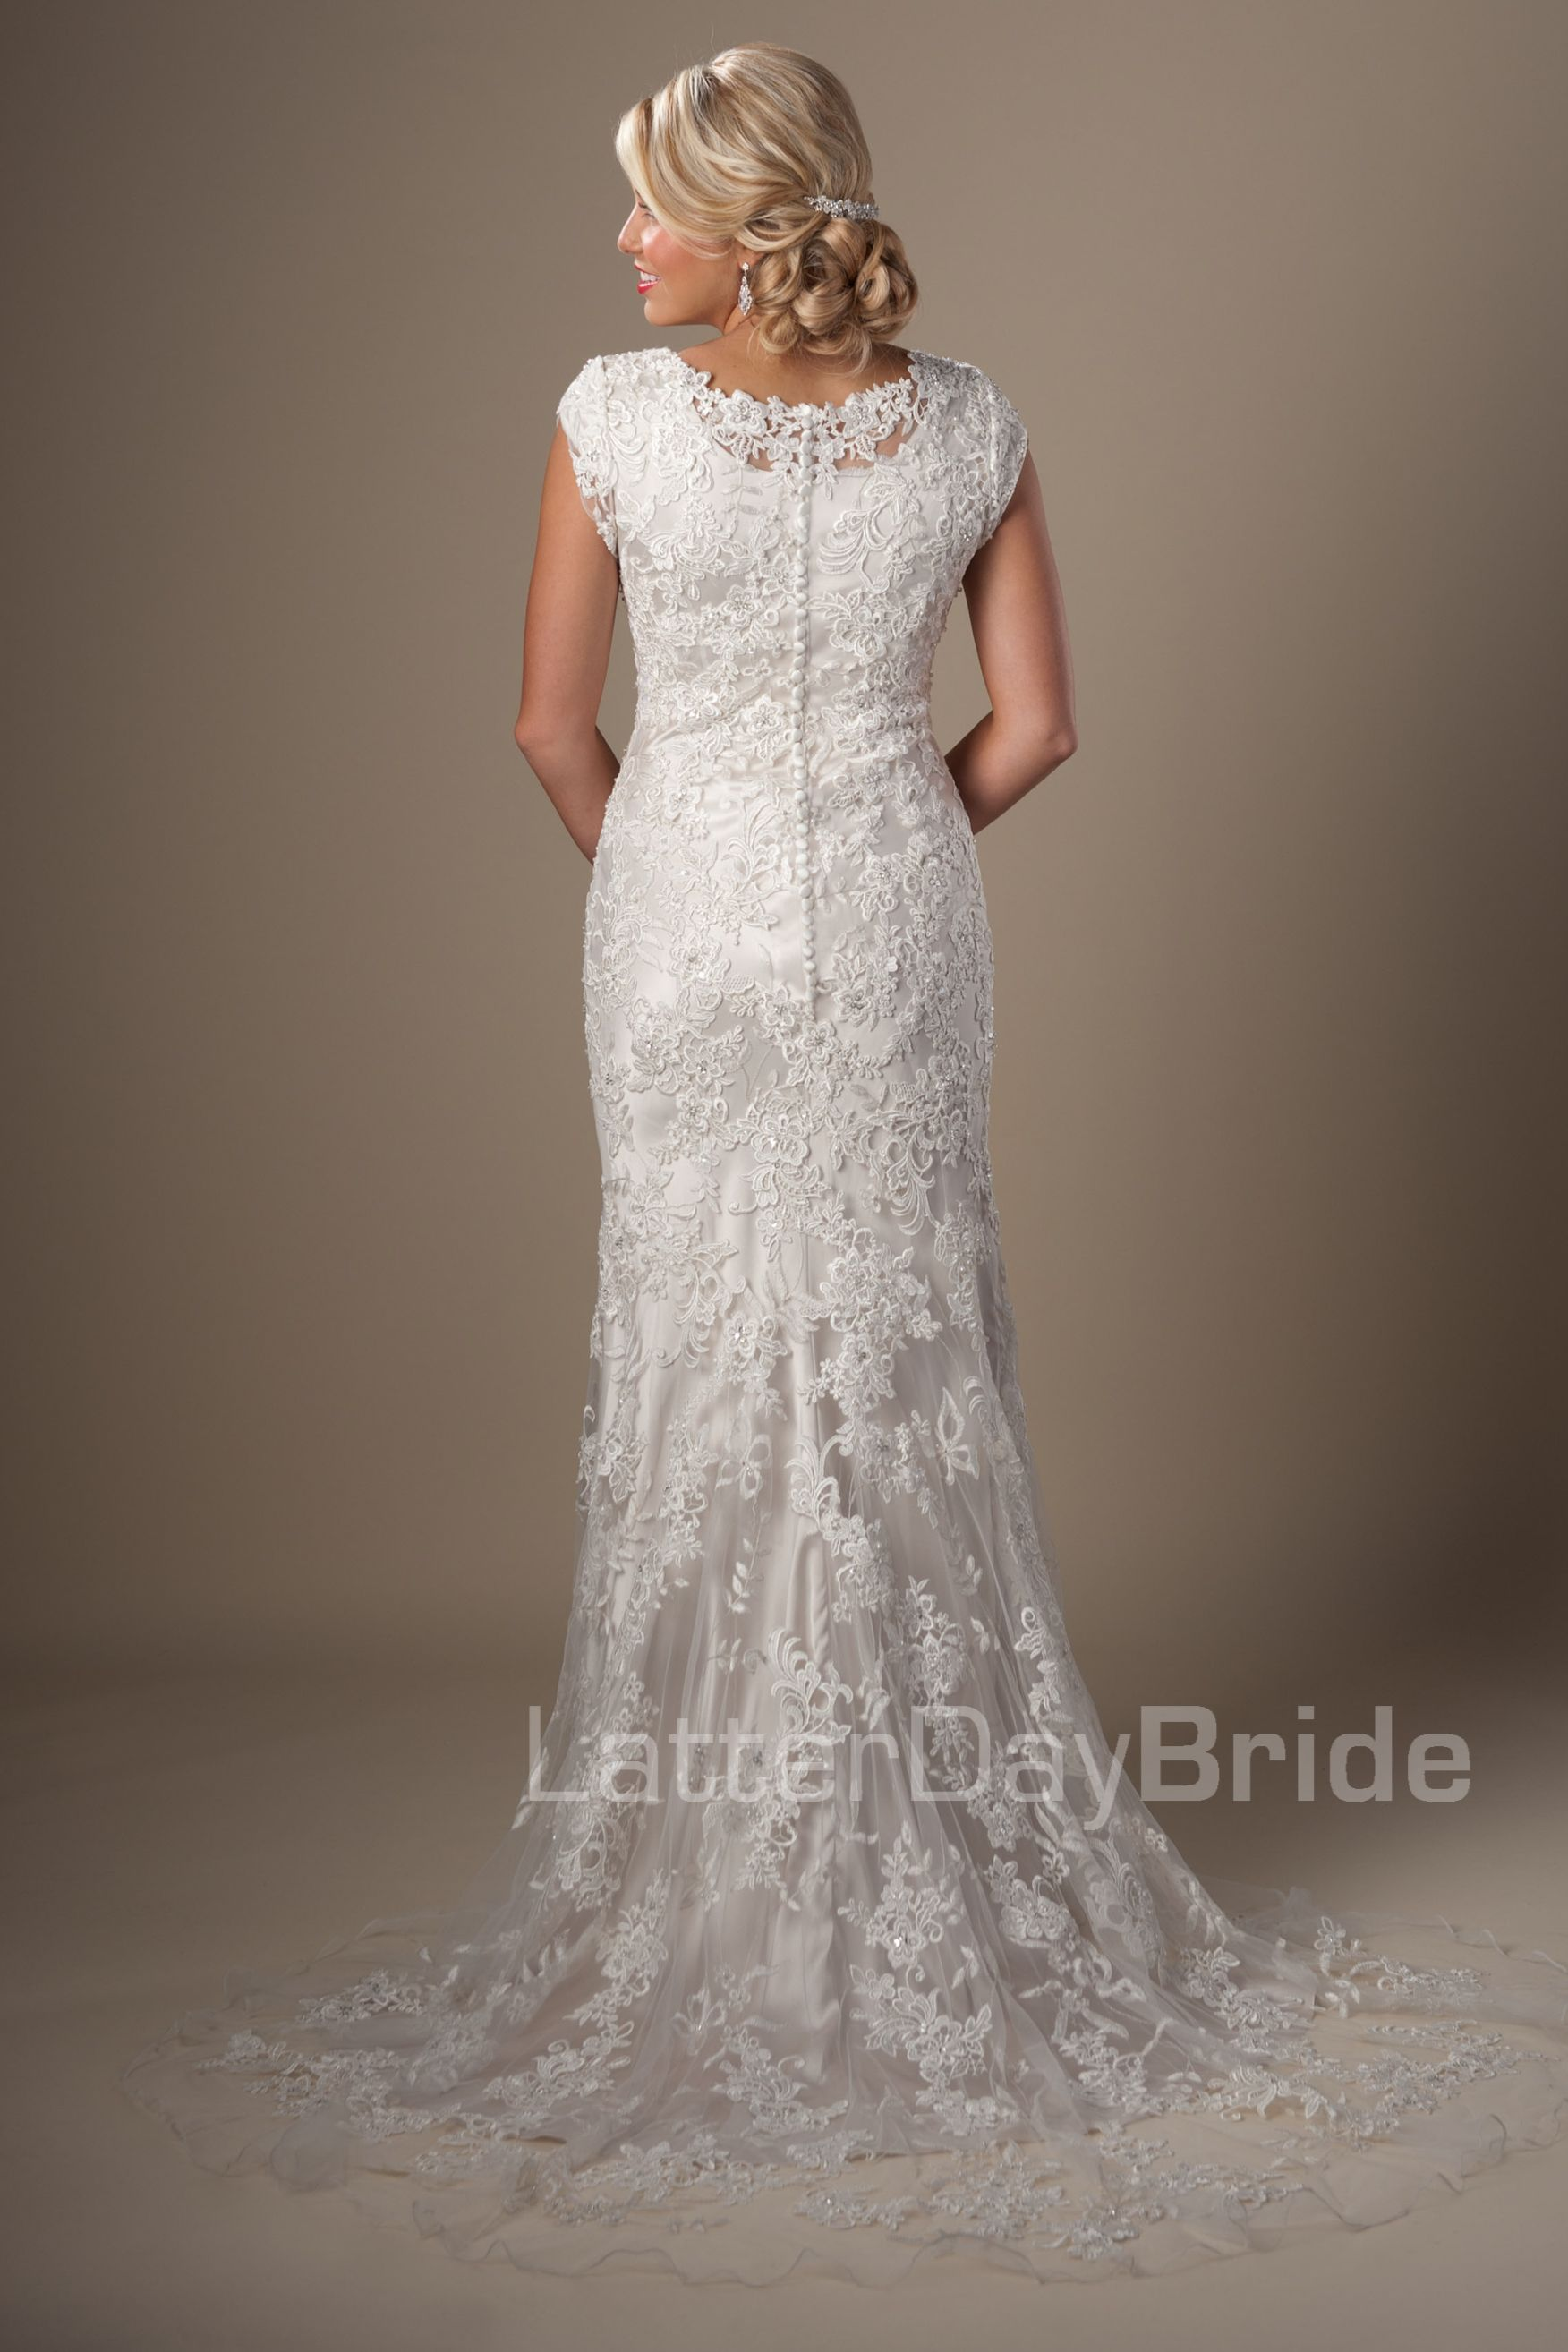 Modest Wedding Dresses : Zinnia. Latter Day Bride, Gateway Bridal ...